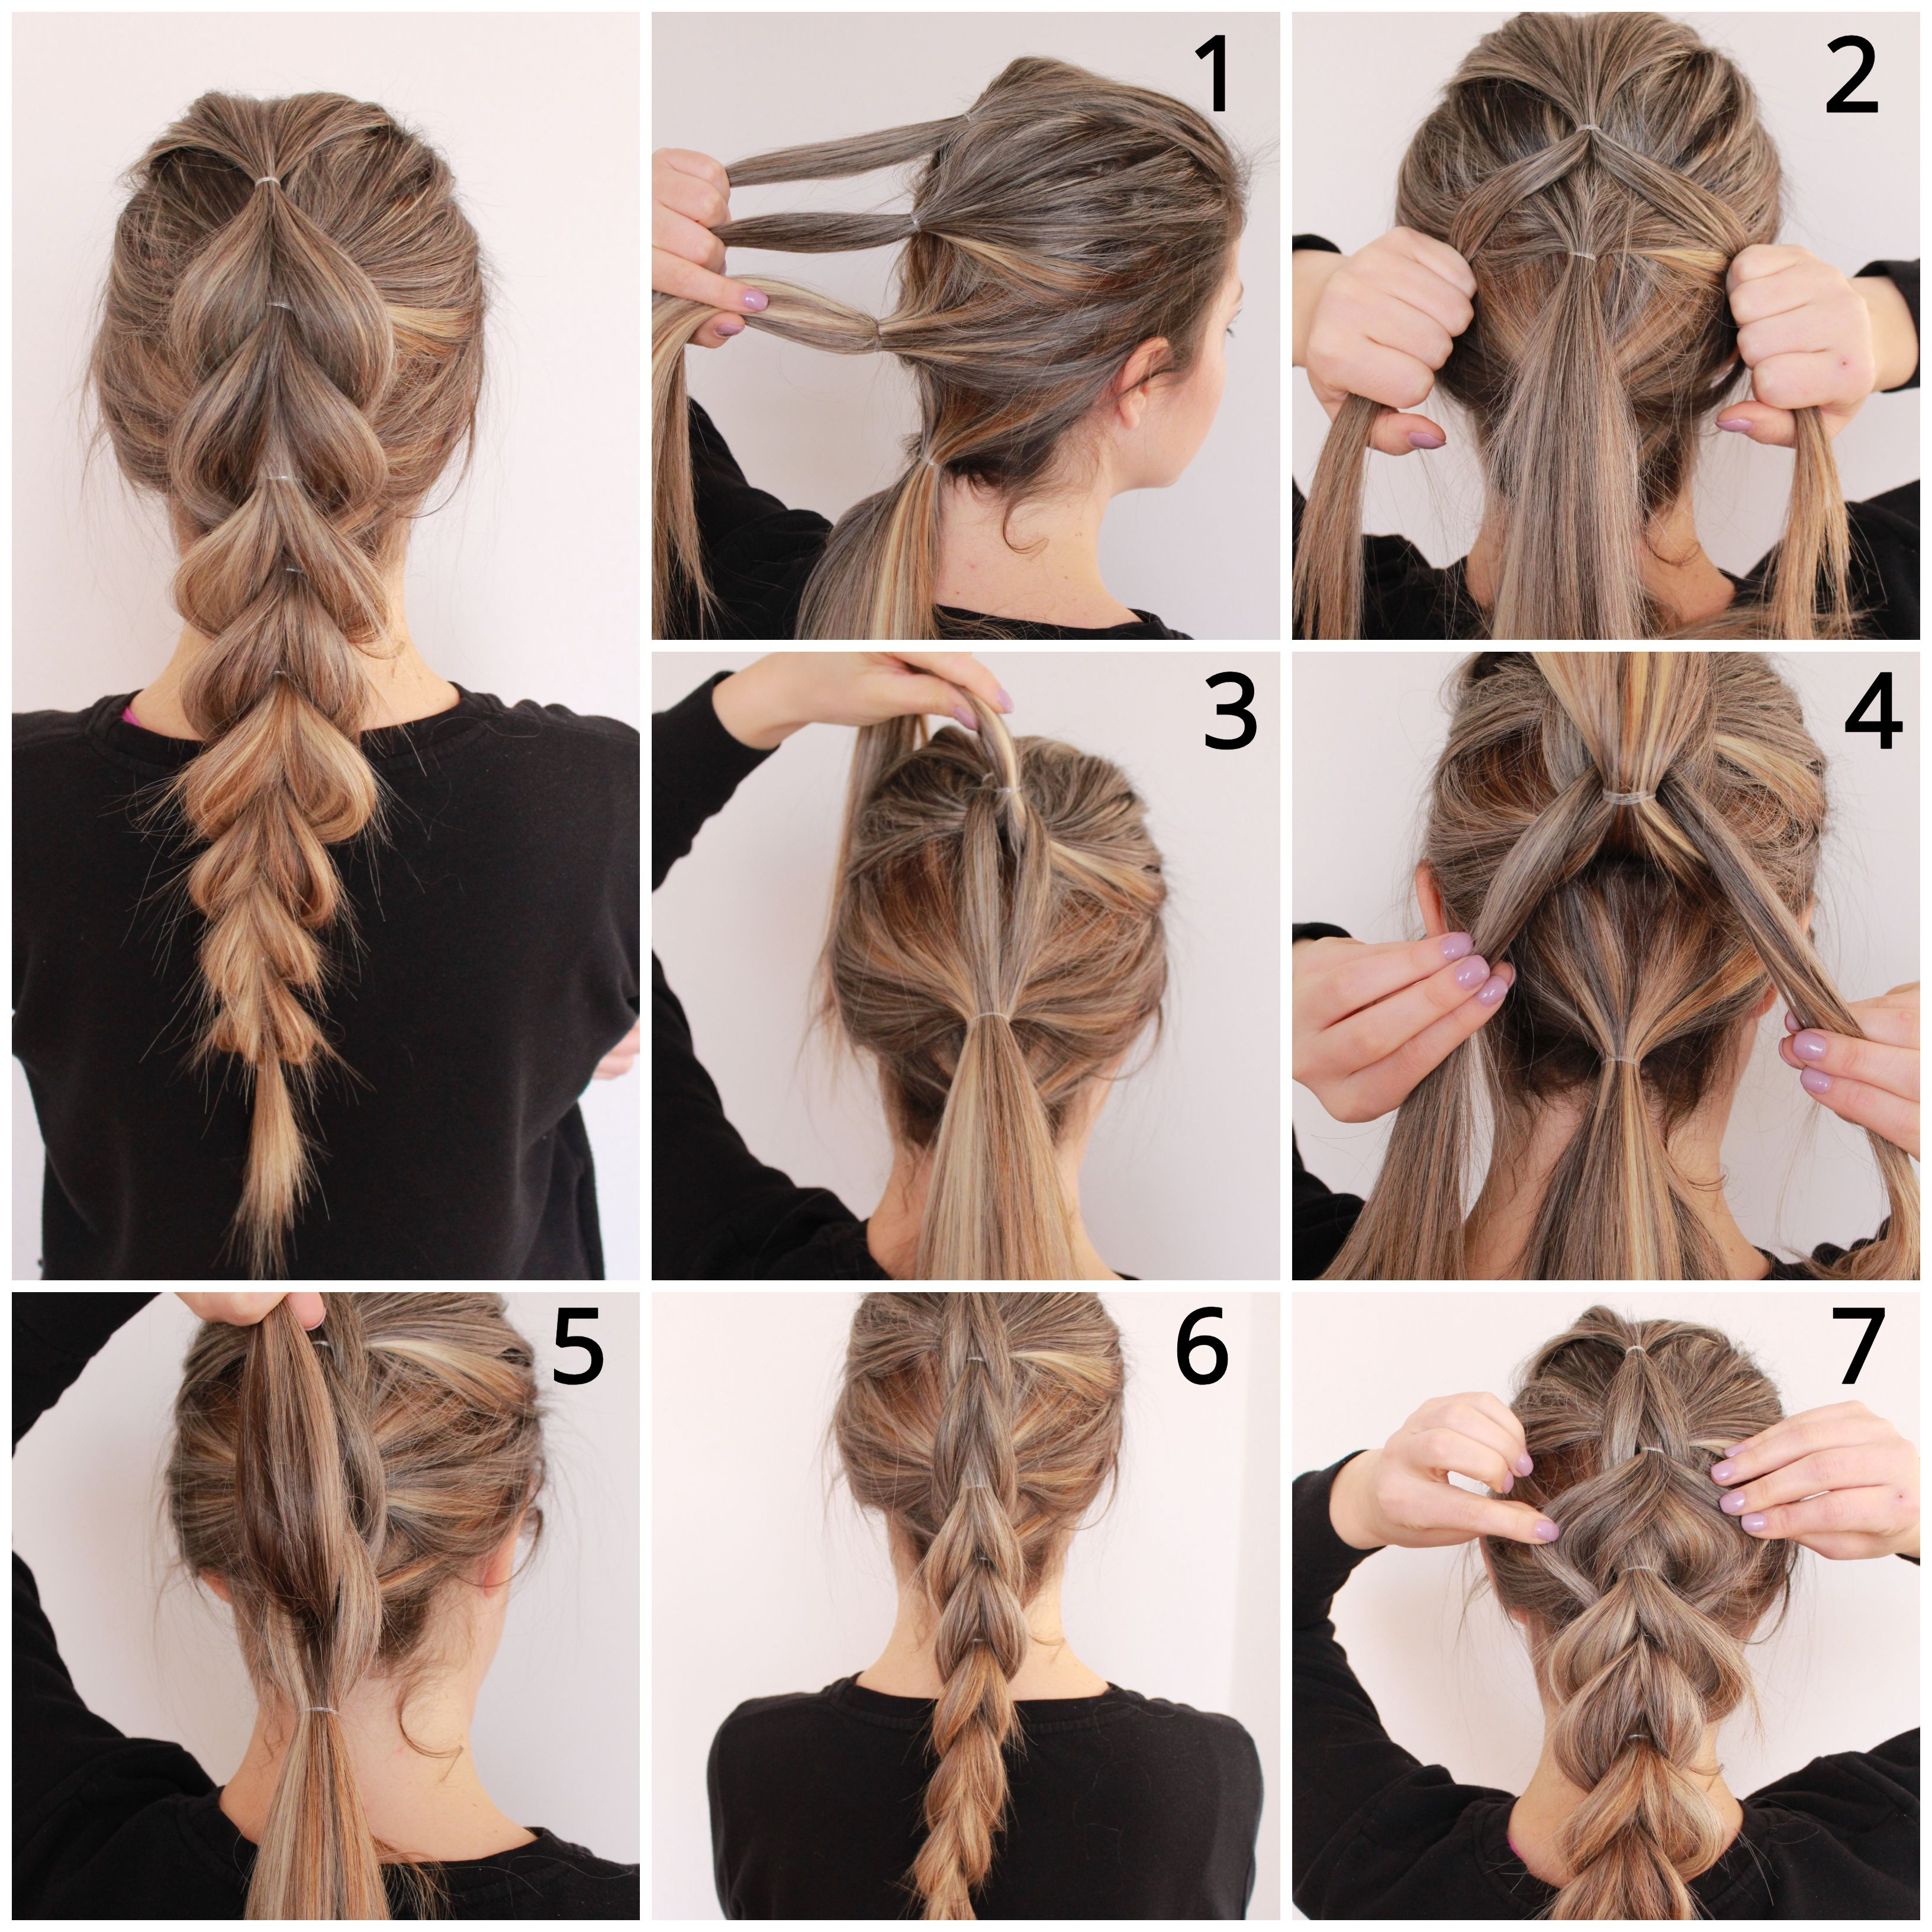 Several simple steps can create a gorgeous updo ha